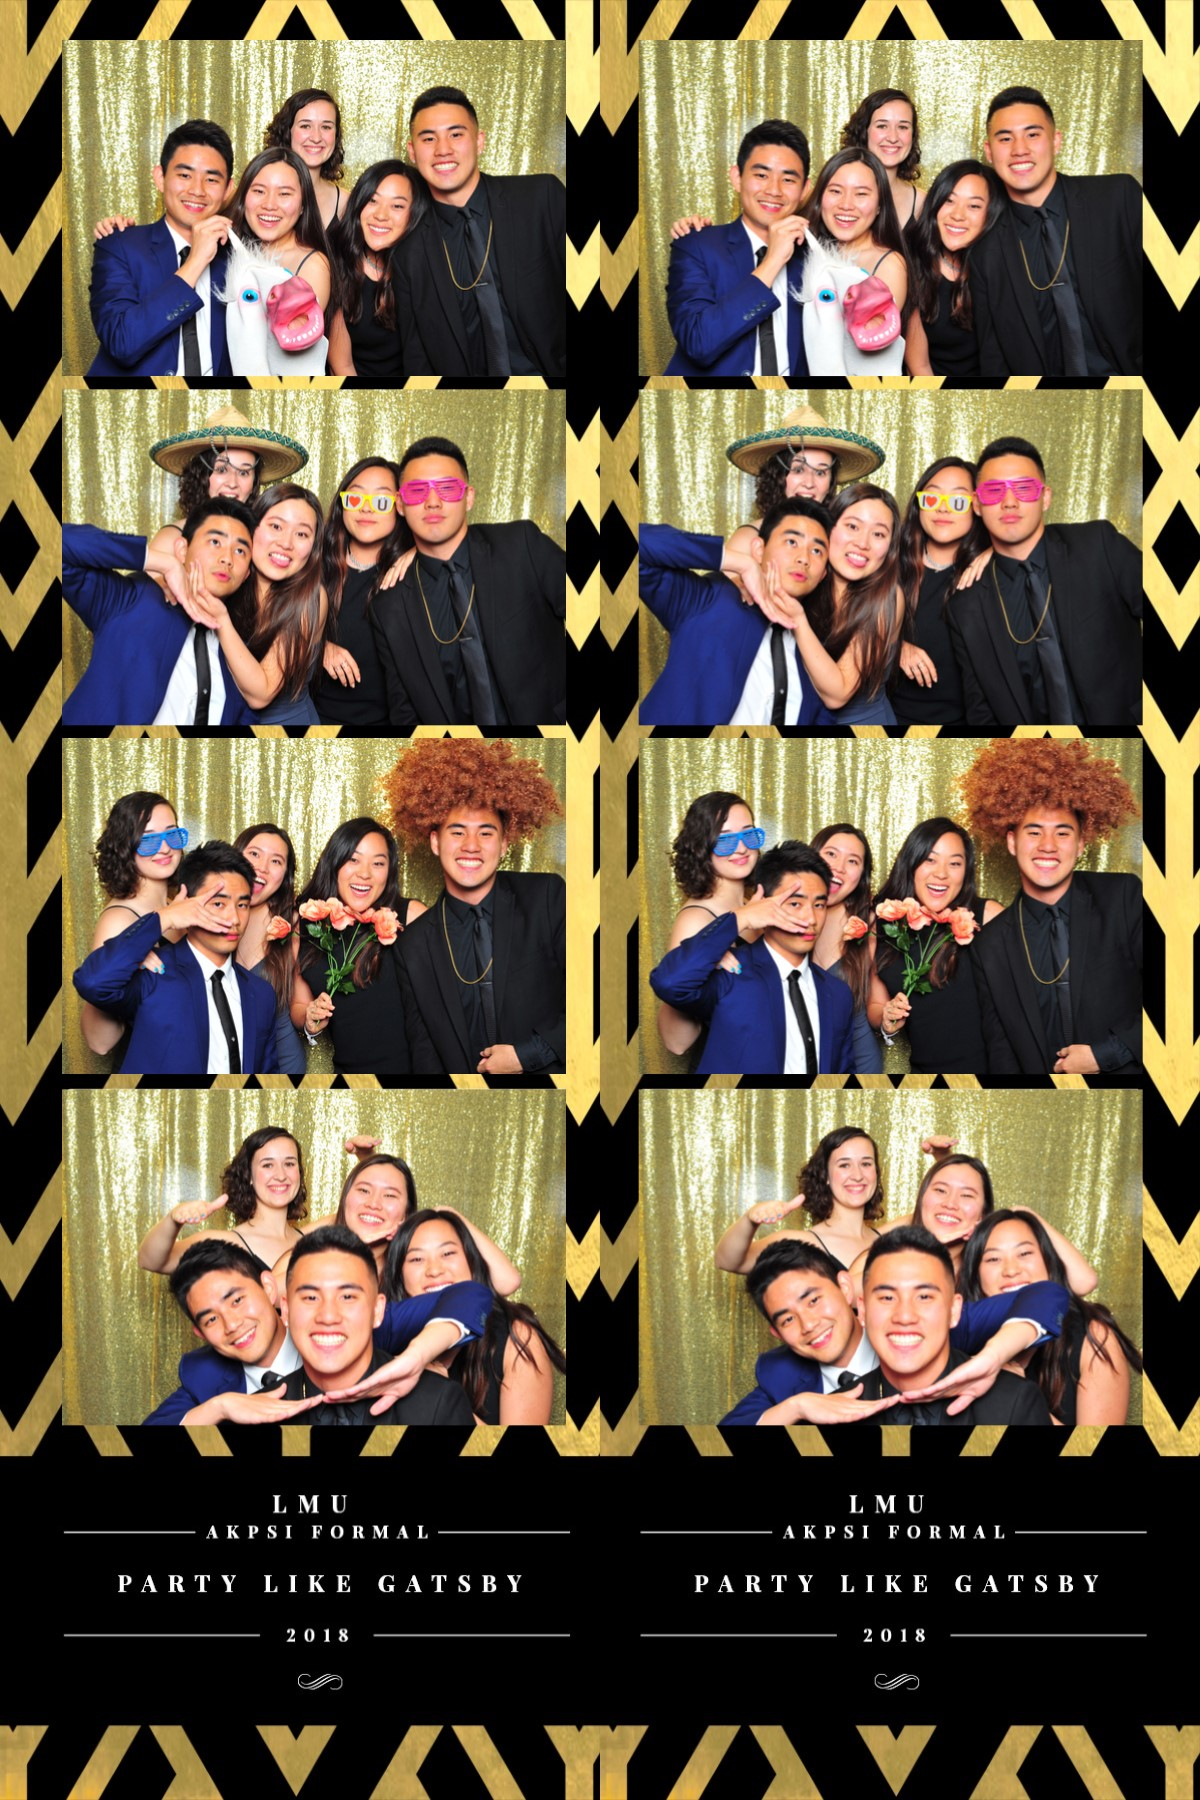 LMU AKPSI Formal - Prints - Photo Booth Affair 27